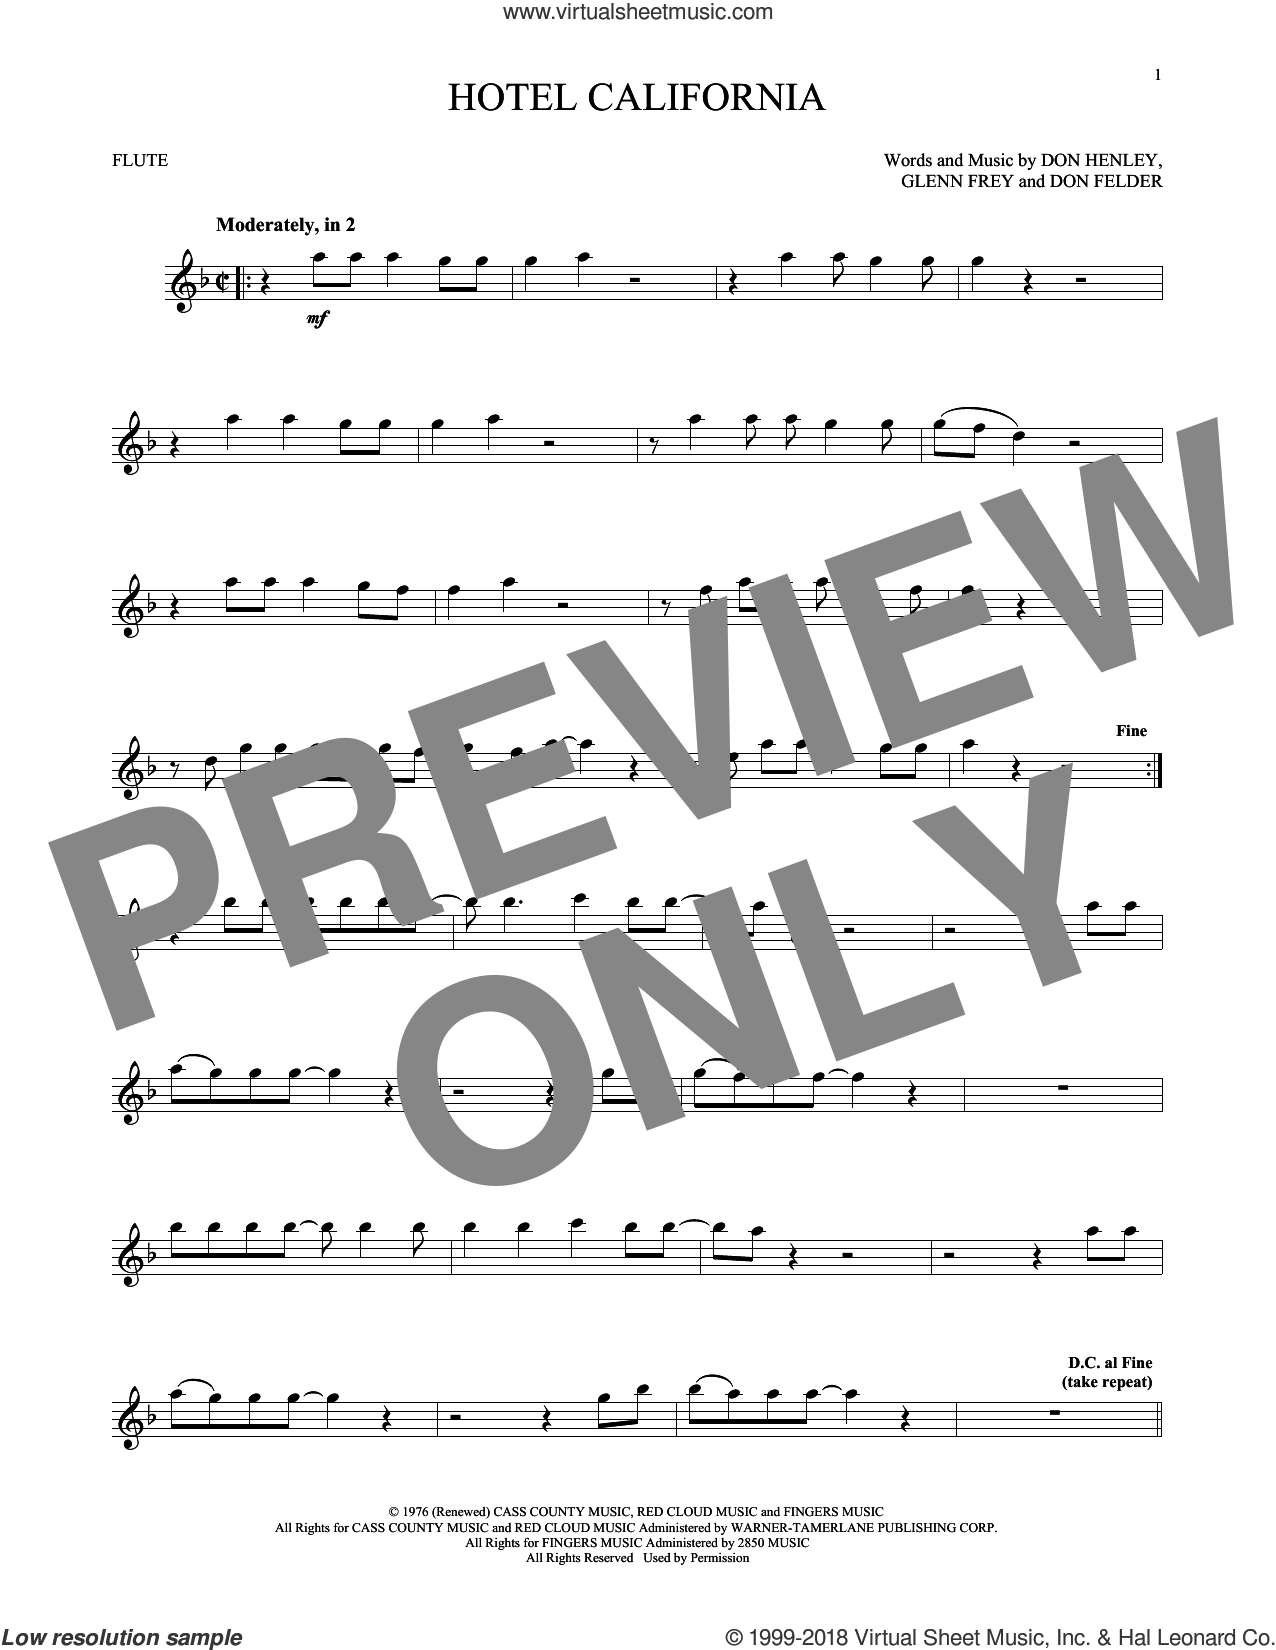 Hotel California sheet music for flute solo by Don Henley, The Eagles, Don Felder and Glenn Frey, intermediate skill level